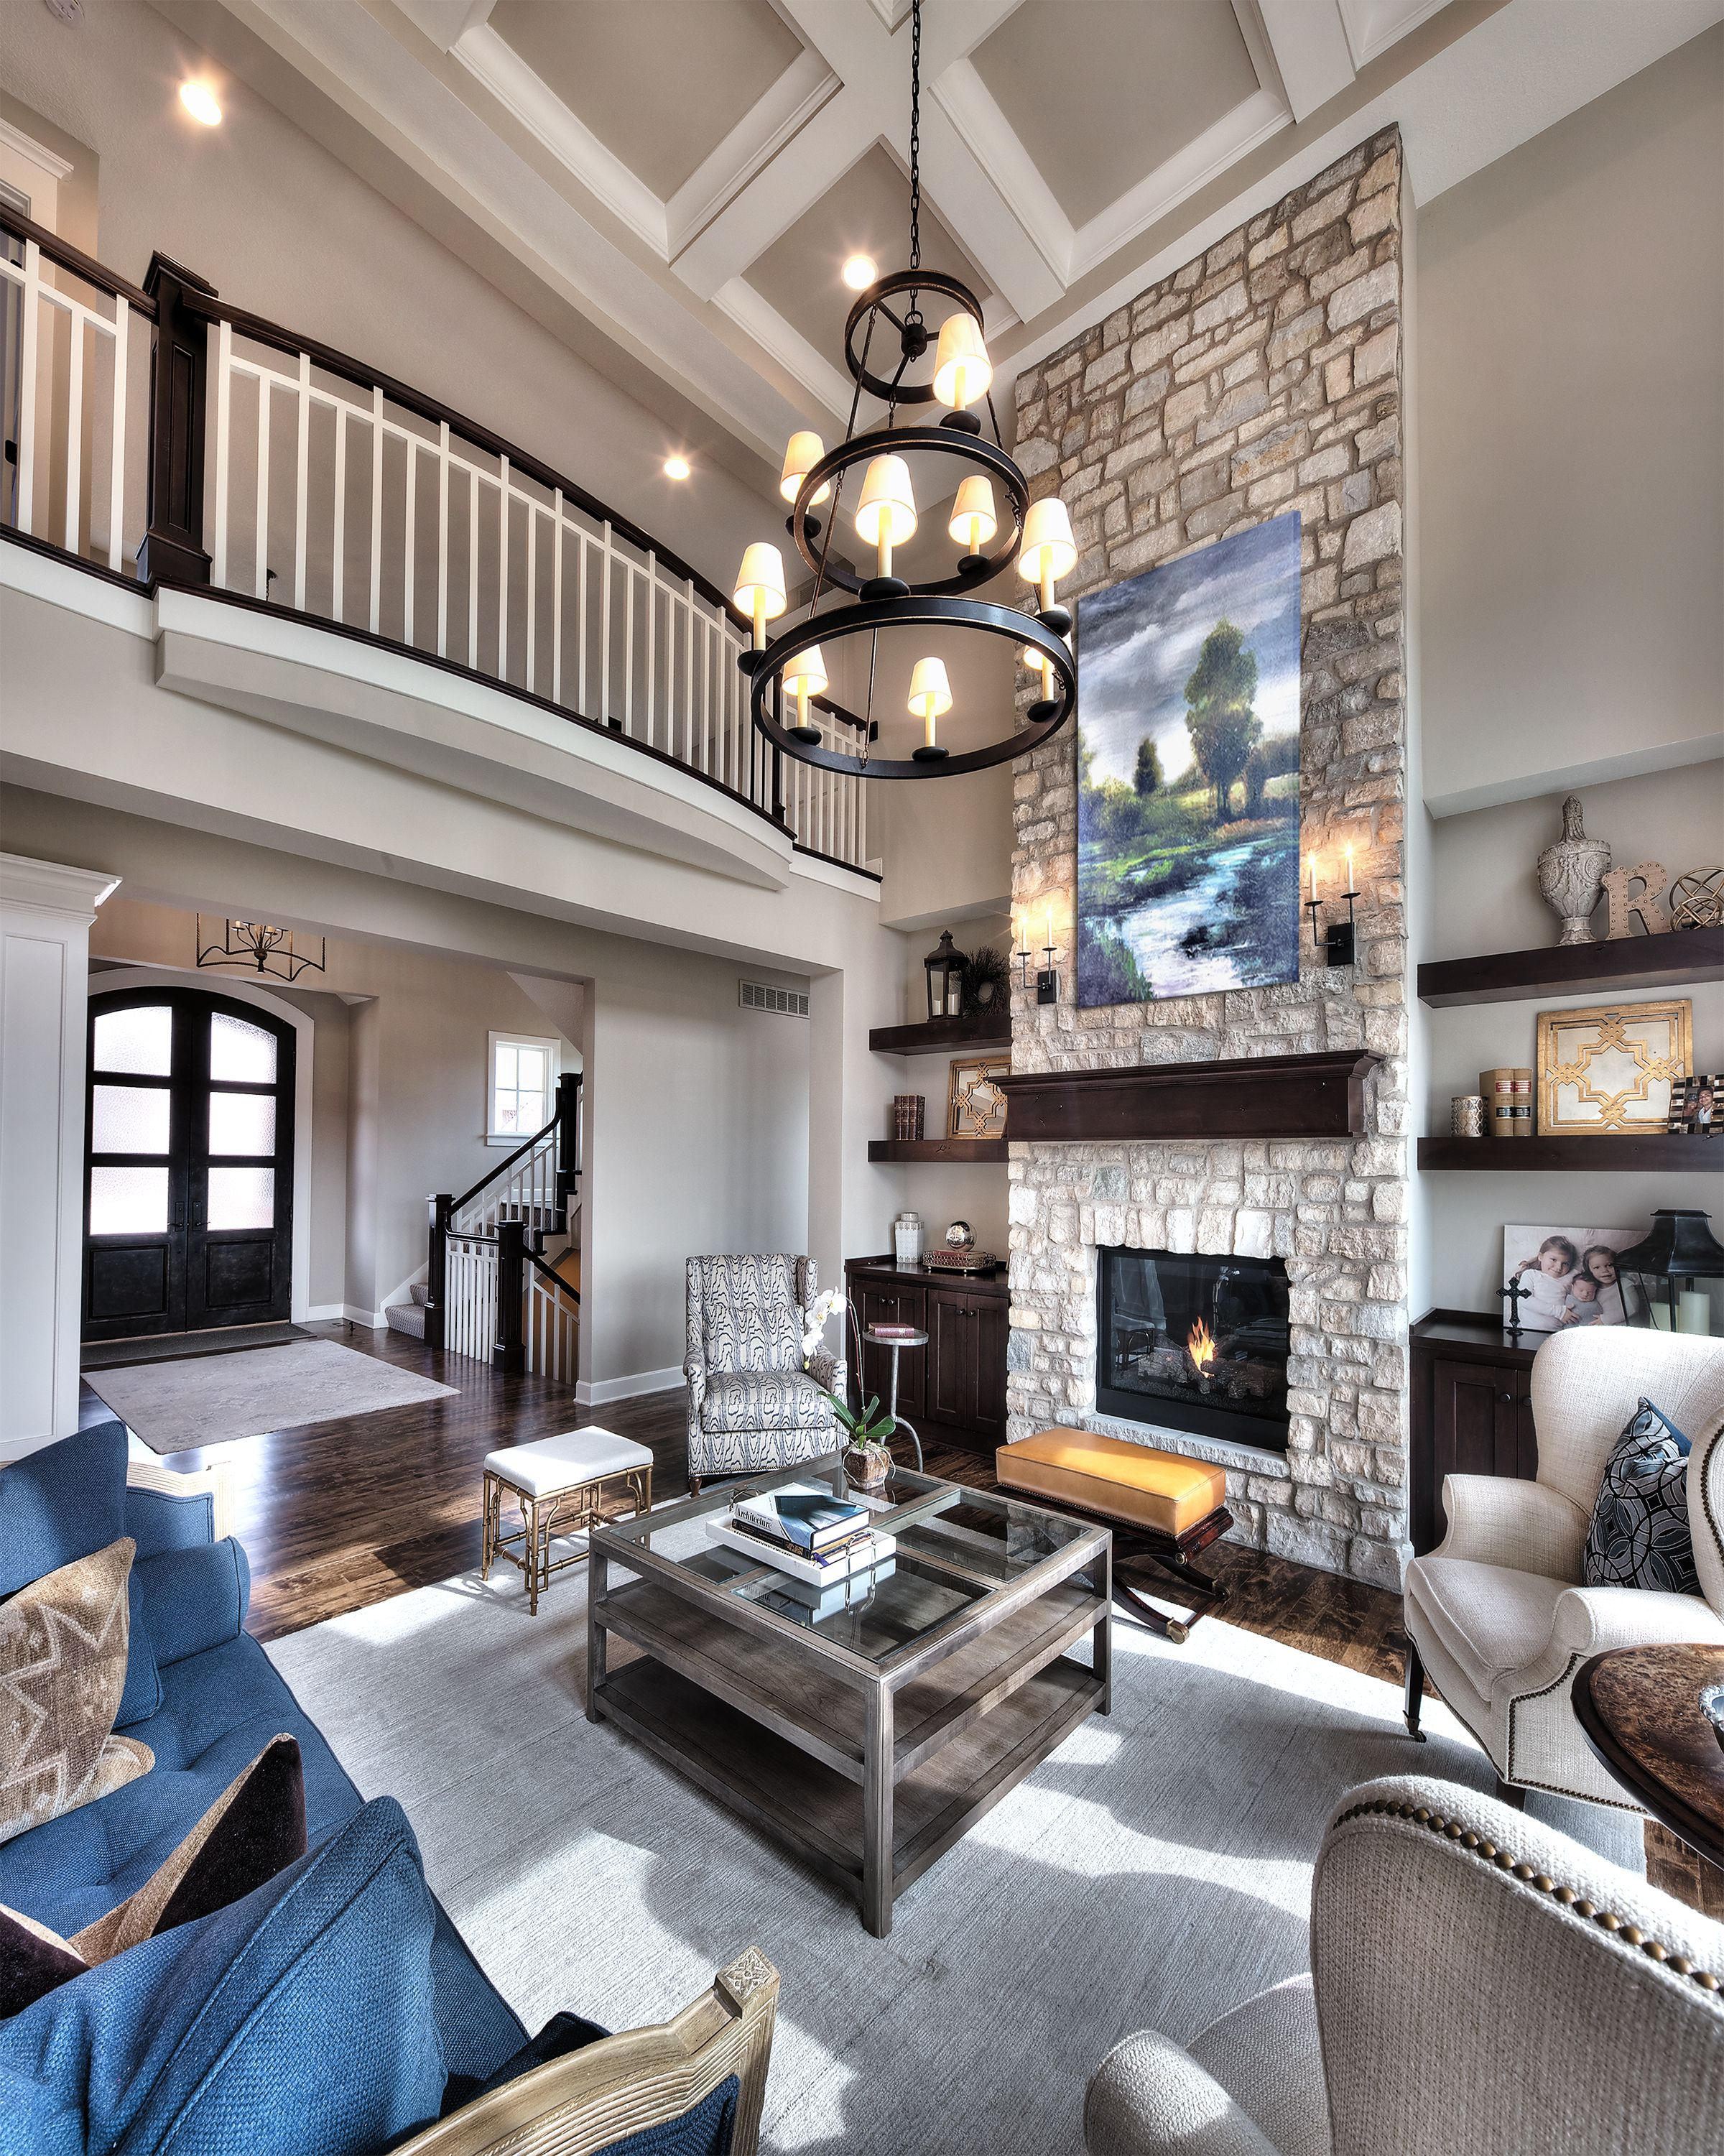 Great Room Open Floor Plan Floor To Ceiling Stone Fireplace Overlook From Upper Level High Ceiling Living Room Family Living Room Design Family Living Rooms